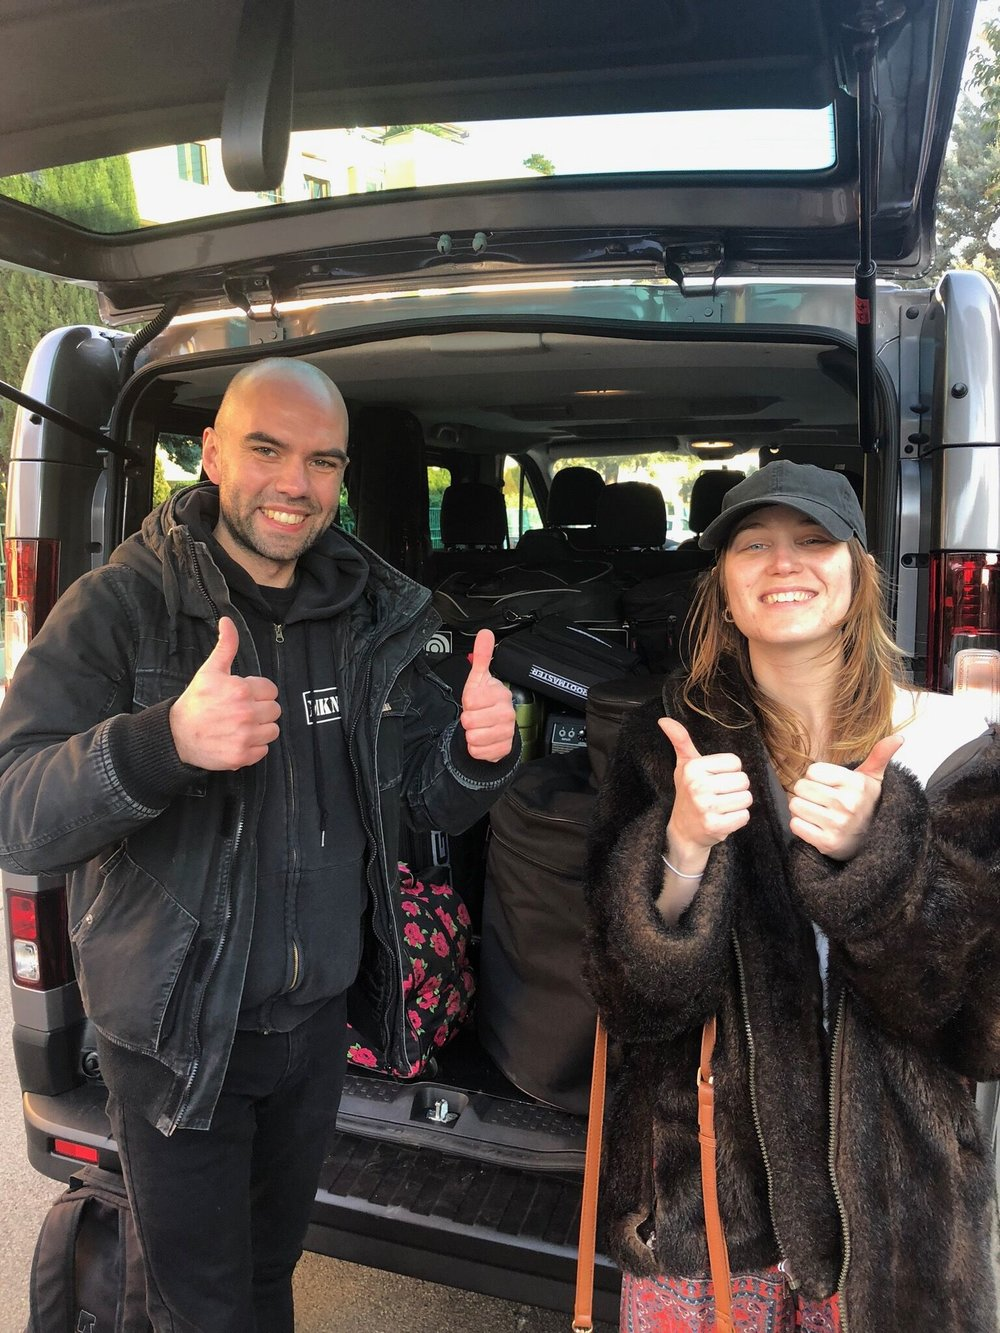 Drummer Jordyn Blakely + Our tour manager Simon after their first successful van pack